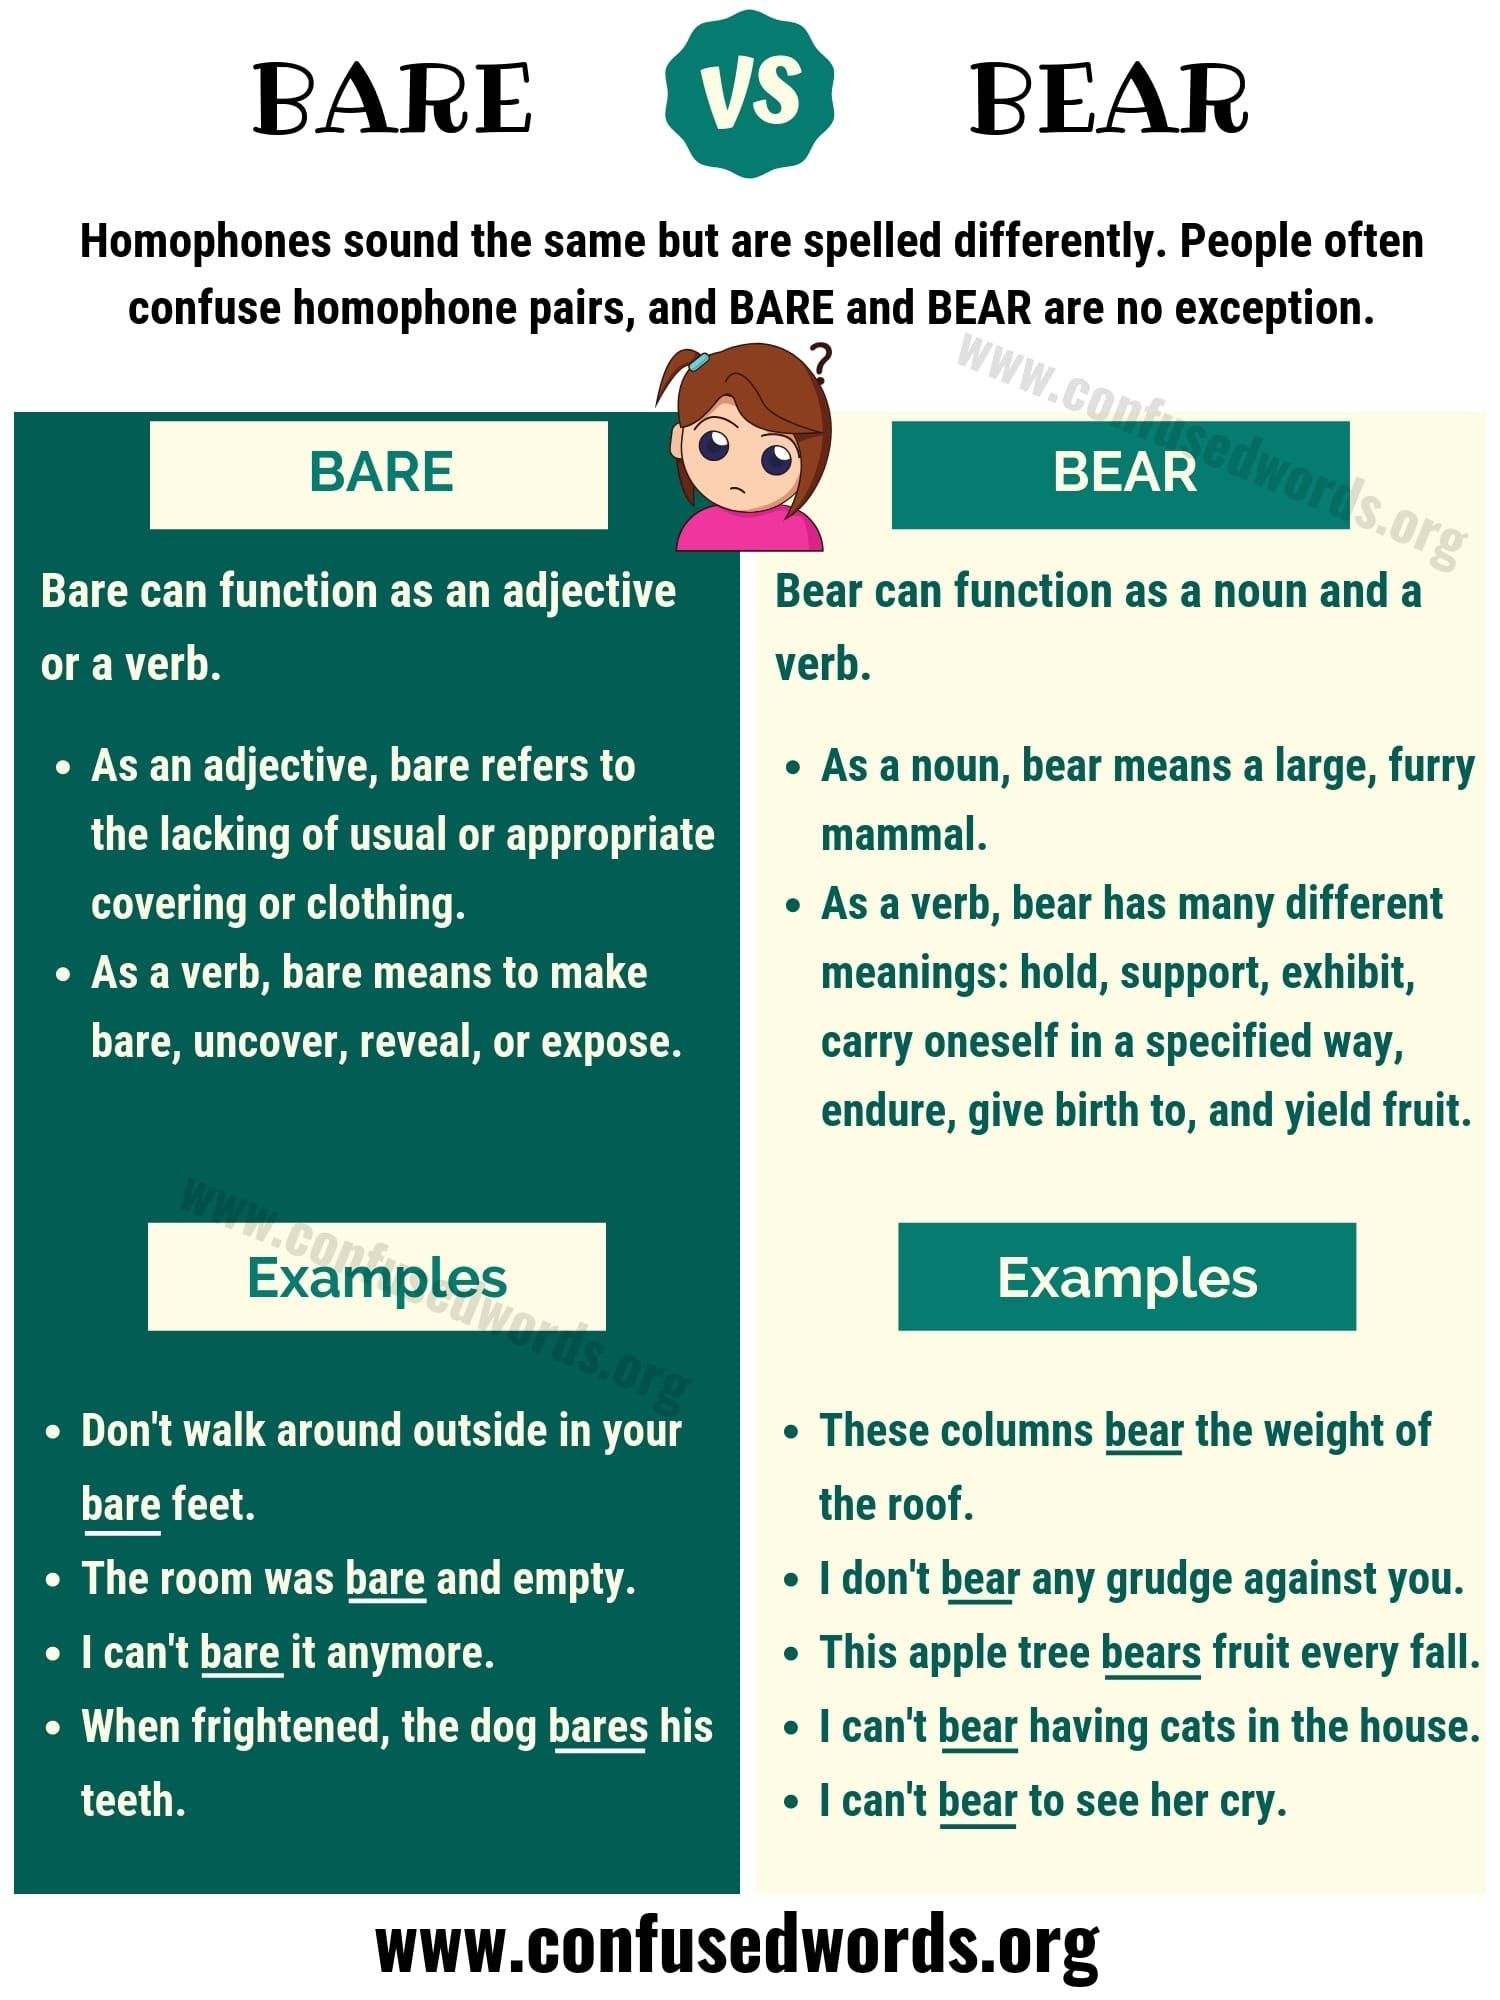 BARE vs BEAR: How to Use Bear vs Bare in a Sentence - Confused Words